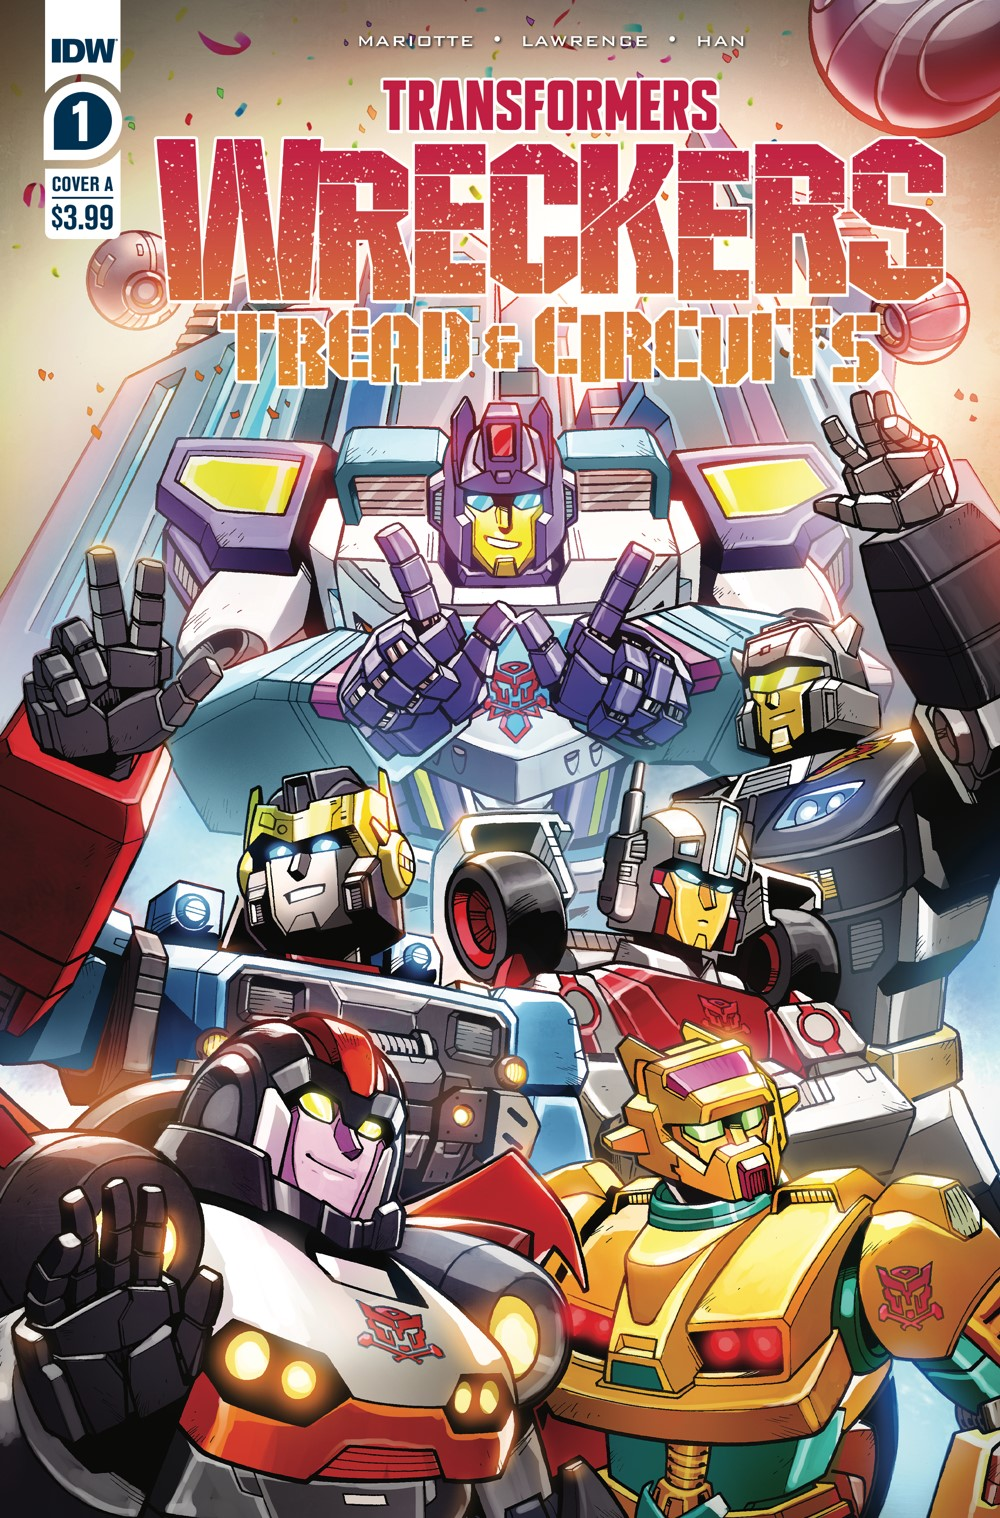 TF-Wreckers-TnC01_cvrA ComicList Previews: TRANSFORMERS WRECKERS TREAD AND CIRCUITS #1 (OF 4)